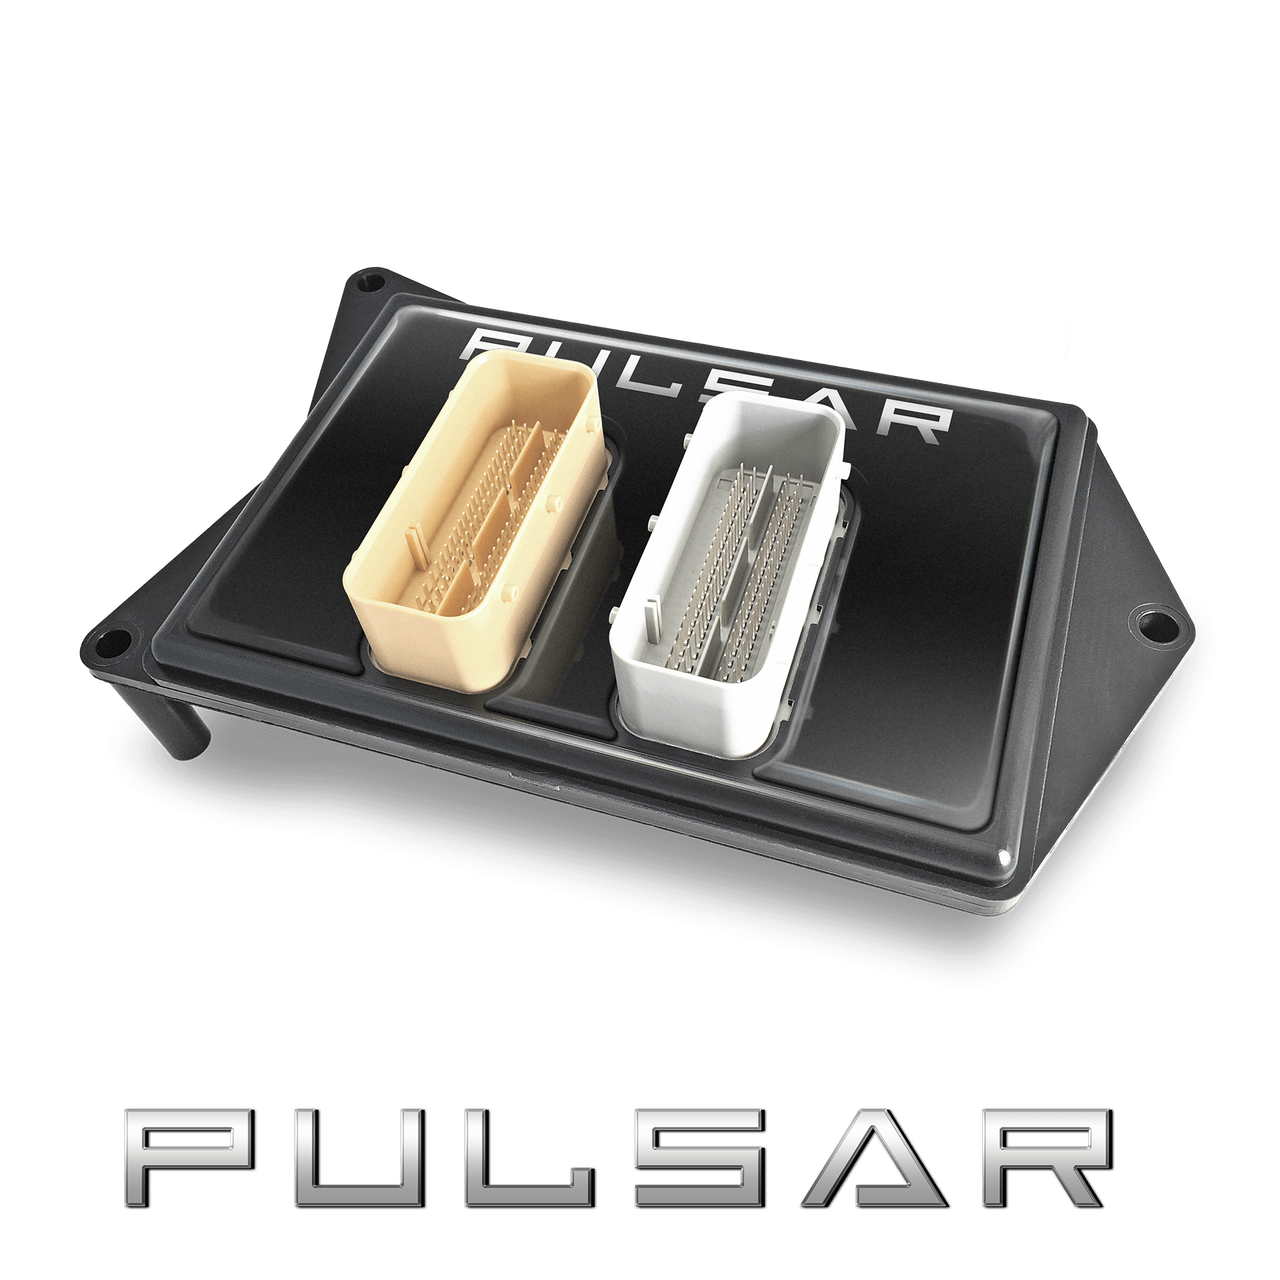 PULSAR Module for 2015-2018 Ram 6.4L Hemi Engine Trucks